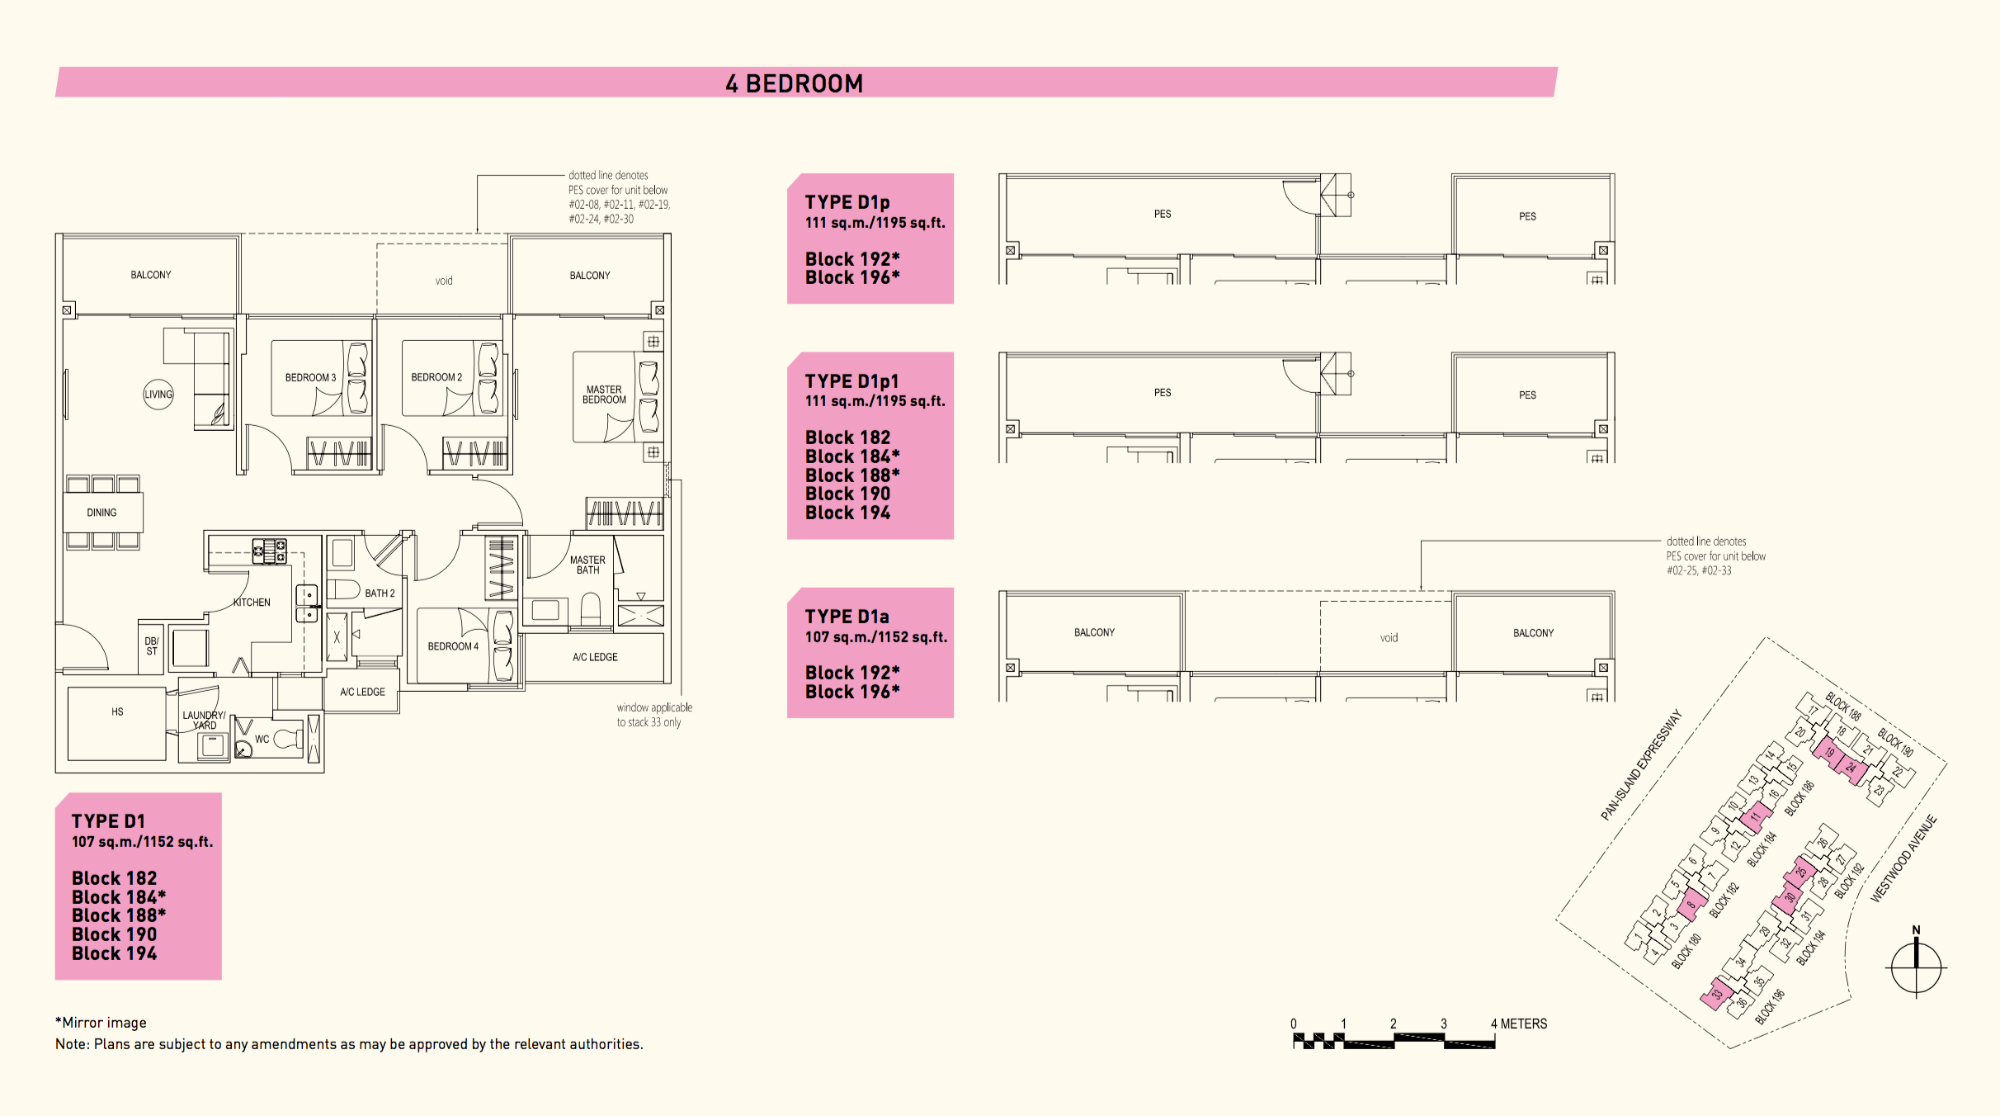 Westwood Residences EC Floor Plan 4 Bedroom D1 107 sqm 1152 sqft